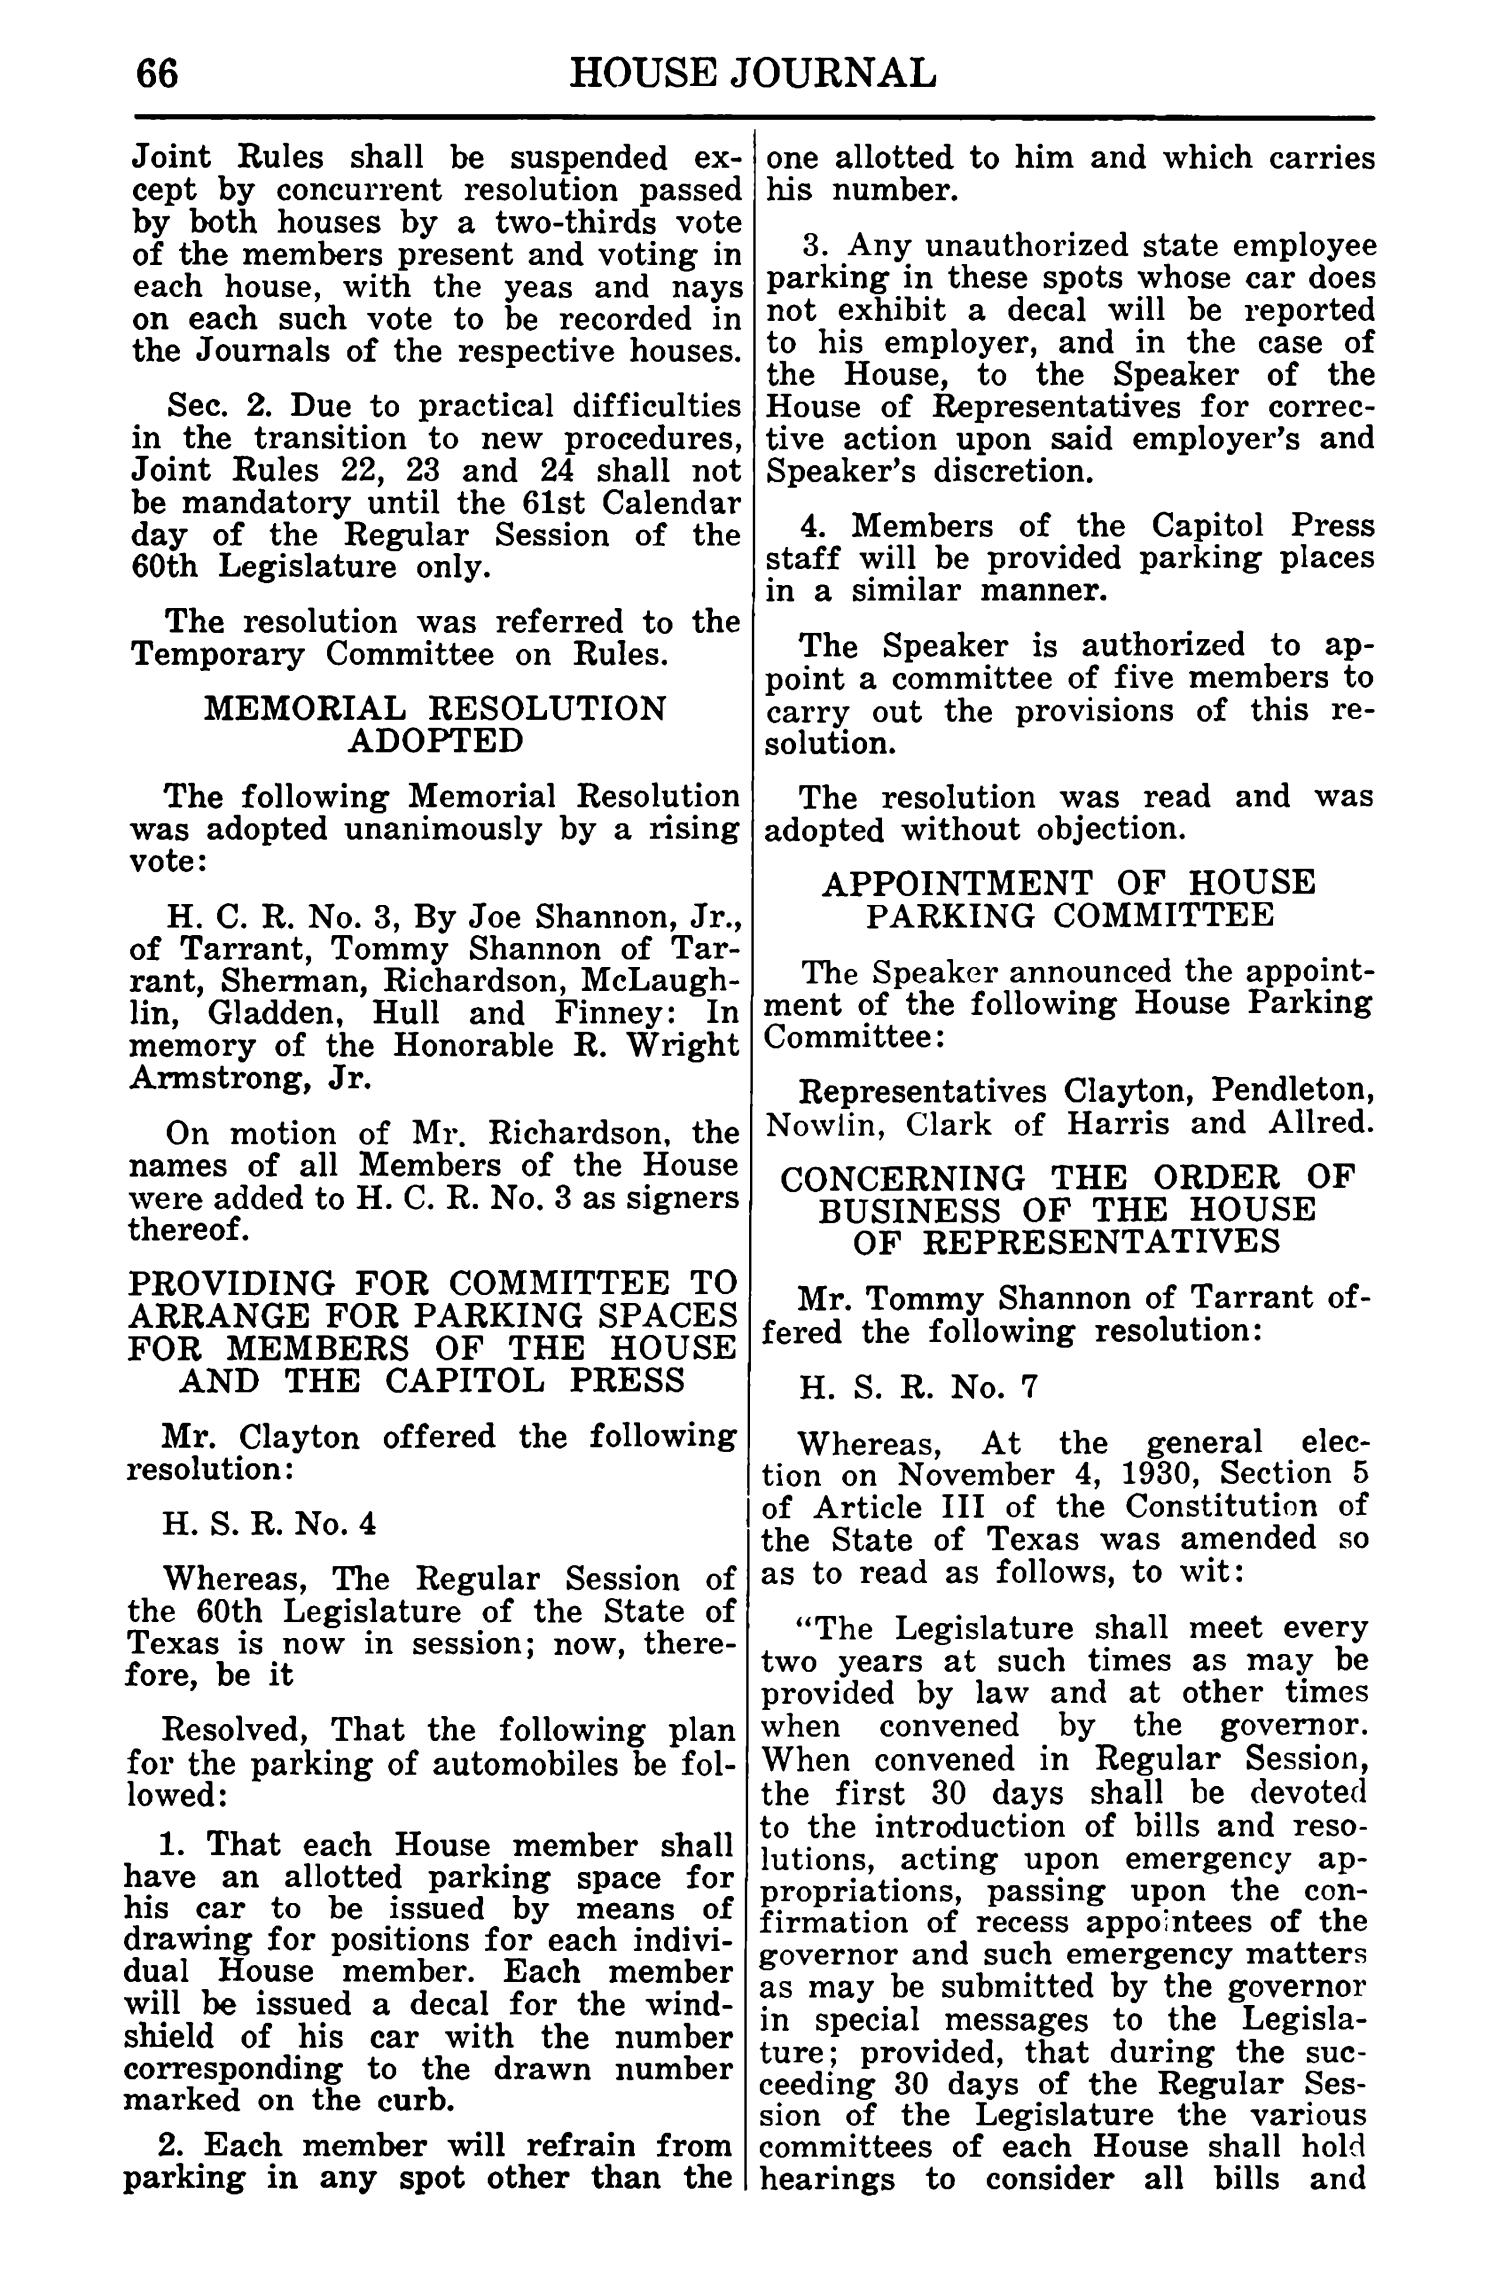 Journal of the House of Representatives of the Regular Session of the Sixtieth Legislature of the State of Texas, Volume 1                                                                                                      66